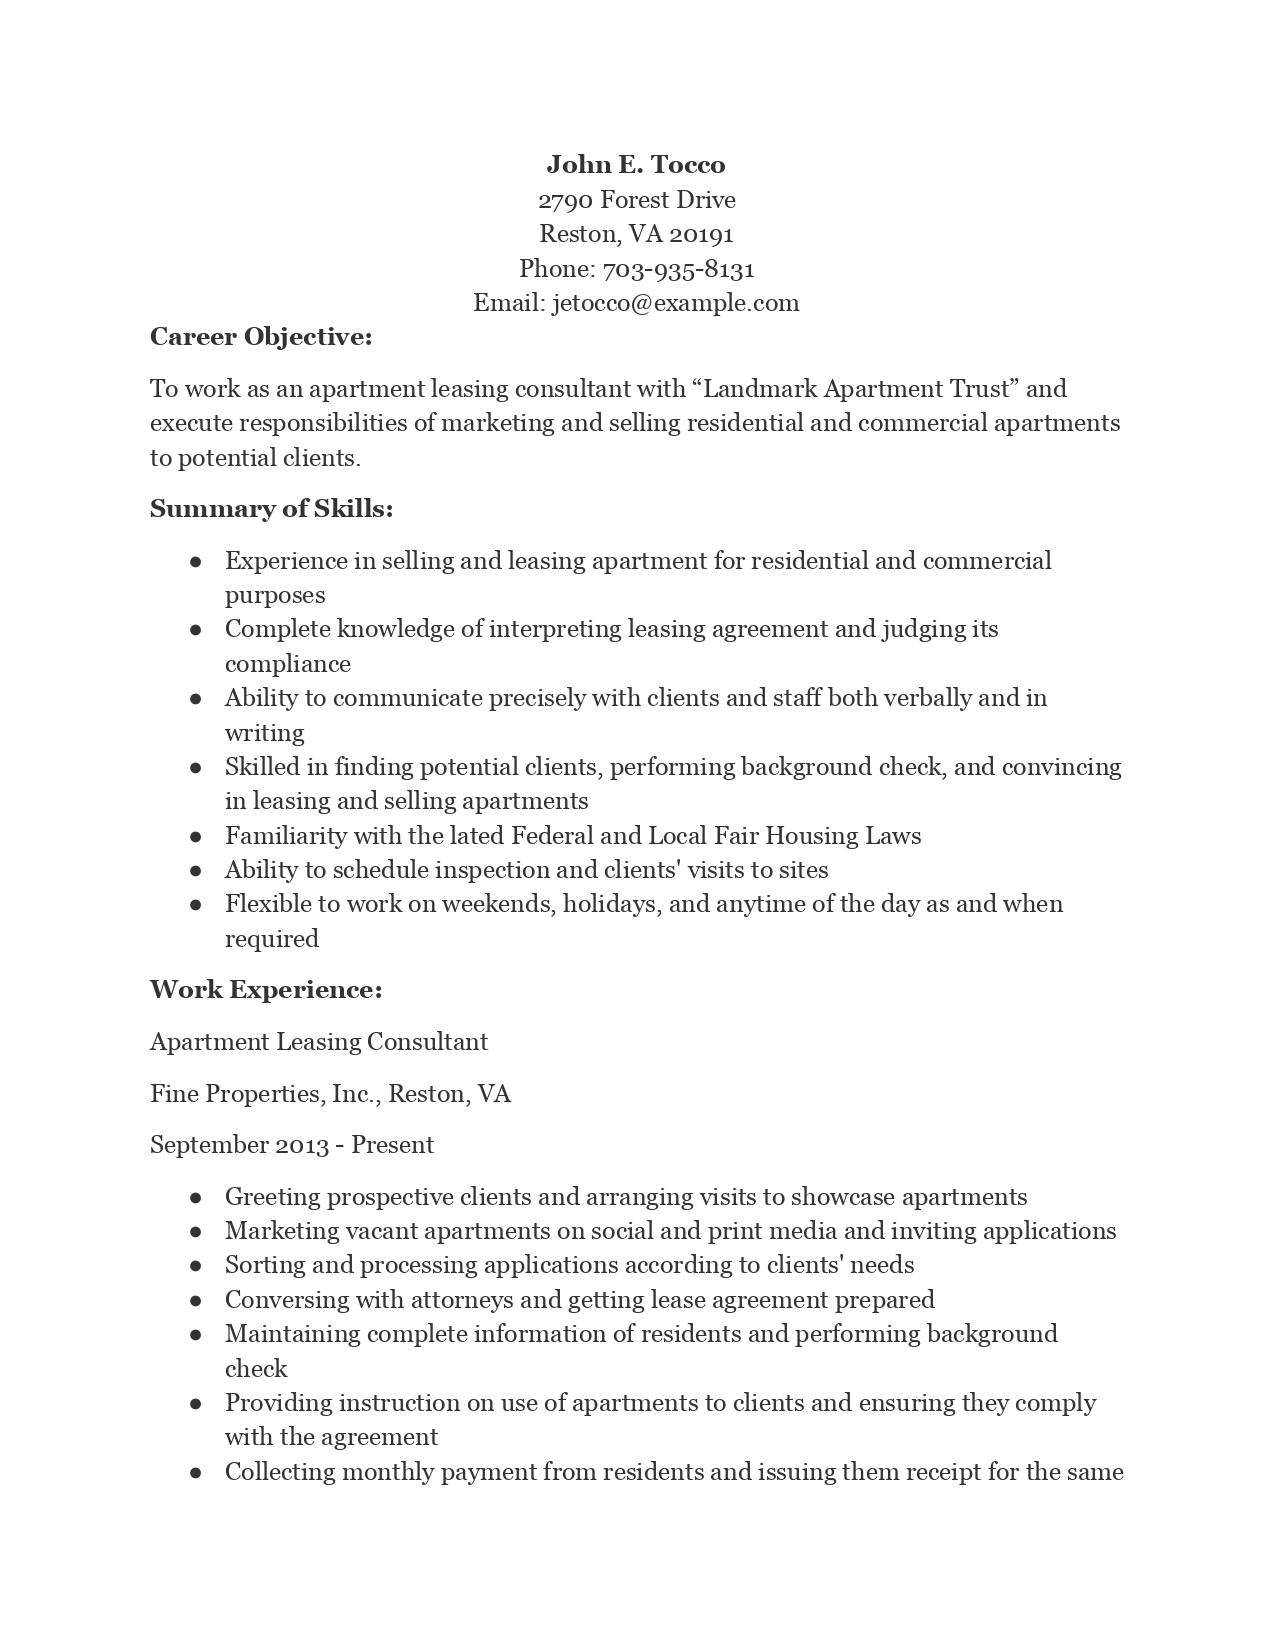 leasing consultant resume sample examples apartment business management objective for Resume Leasing Consultant Resume Examples